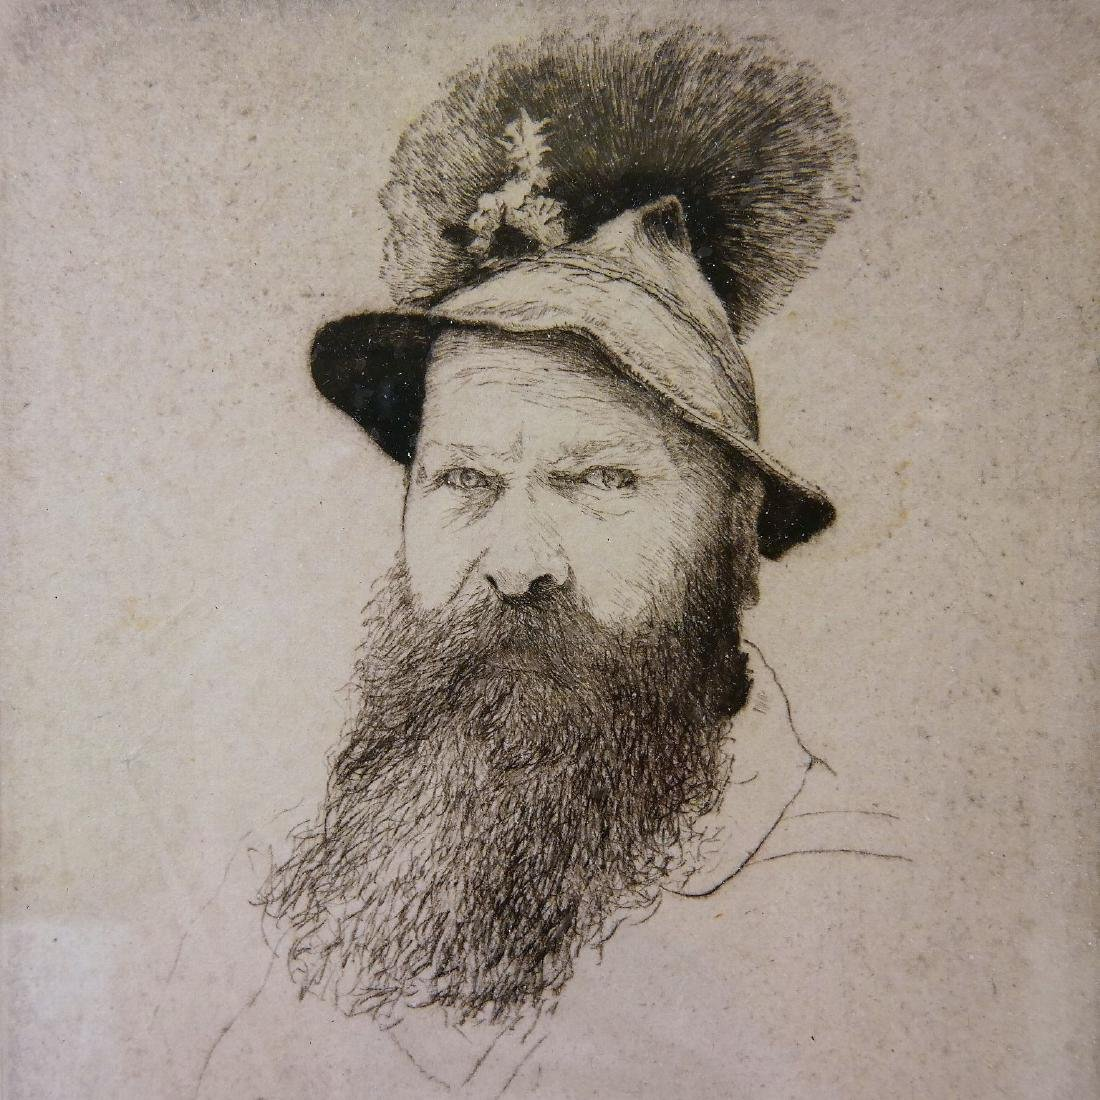 """L.N. VOGEL, ETCHING ON PAPER """"BUST OF A MAN"""" - 1936 - 2"""